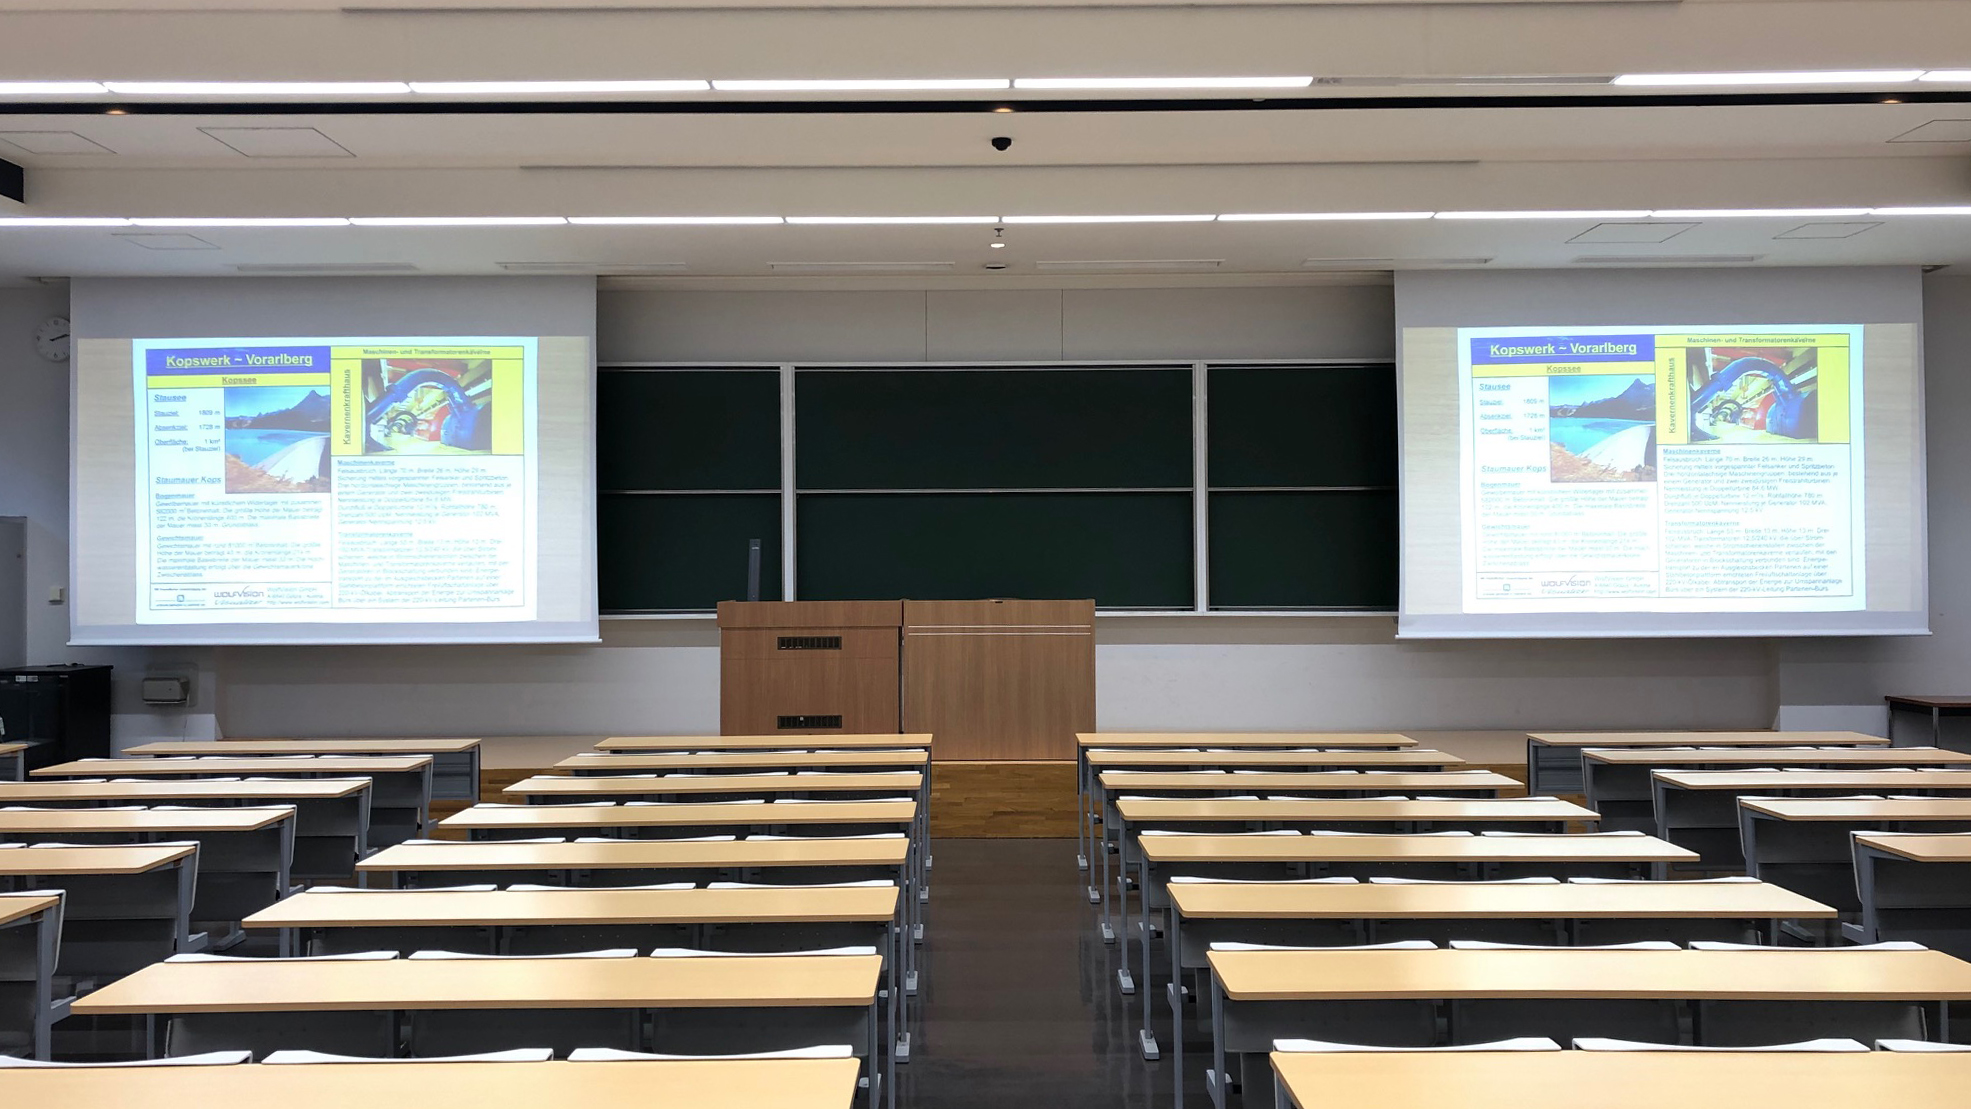 WolfVision Visualizer installed on the lectern at Tokyo Keizai University, Japan.